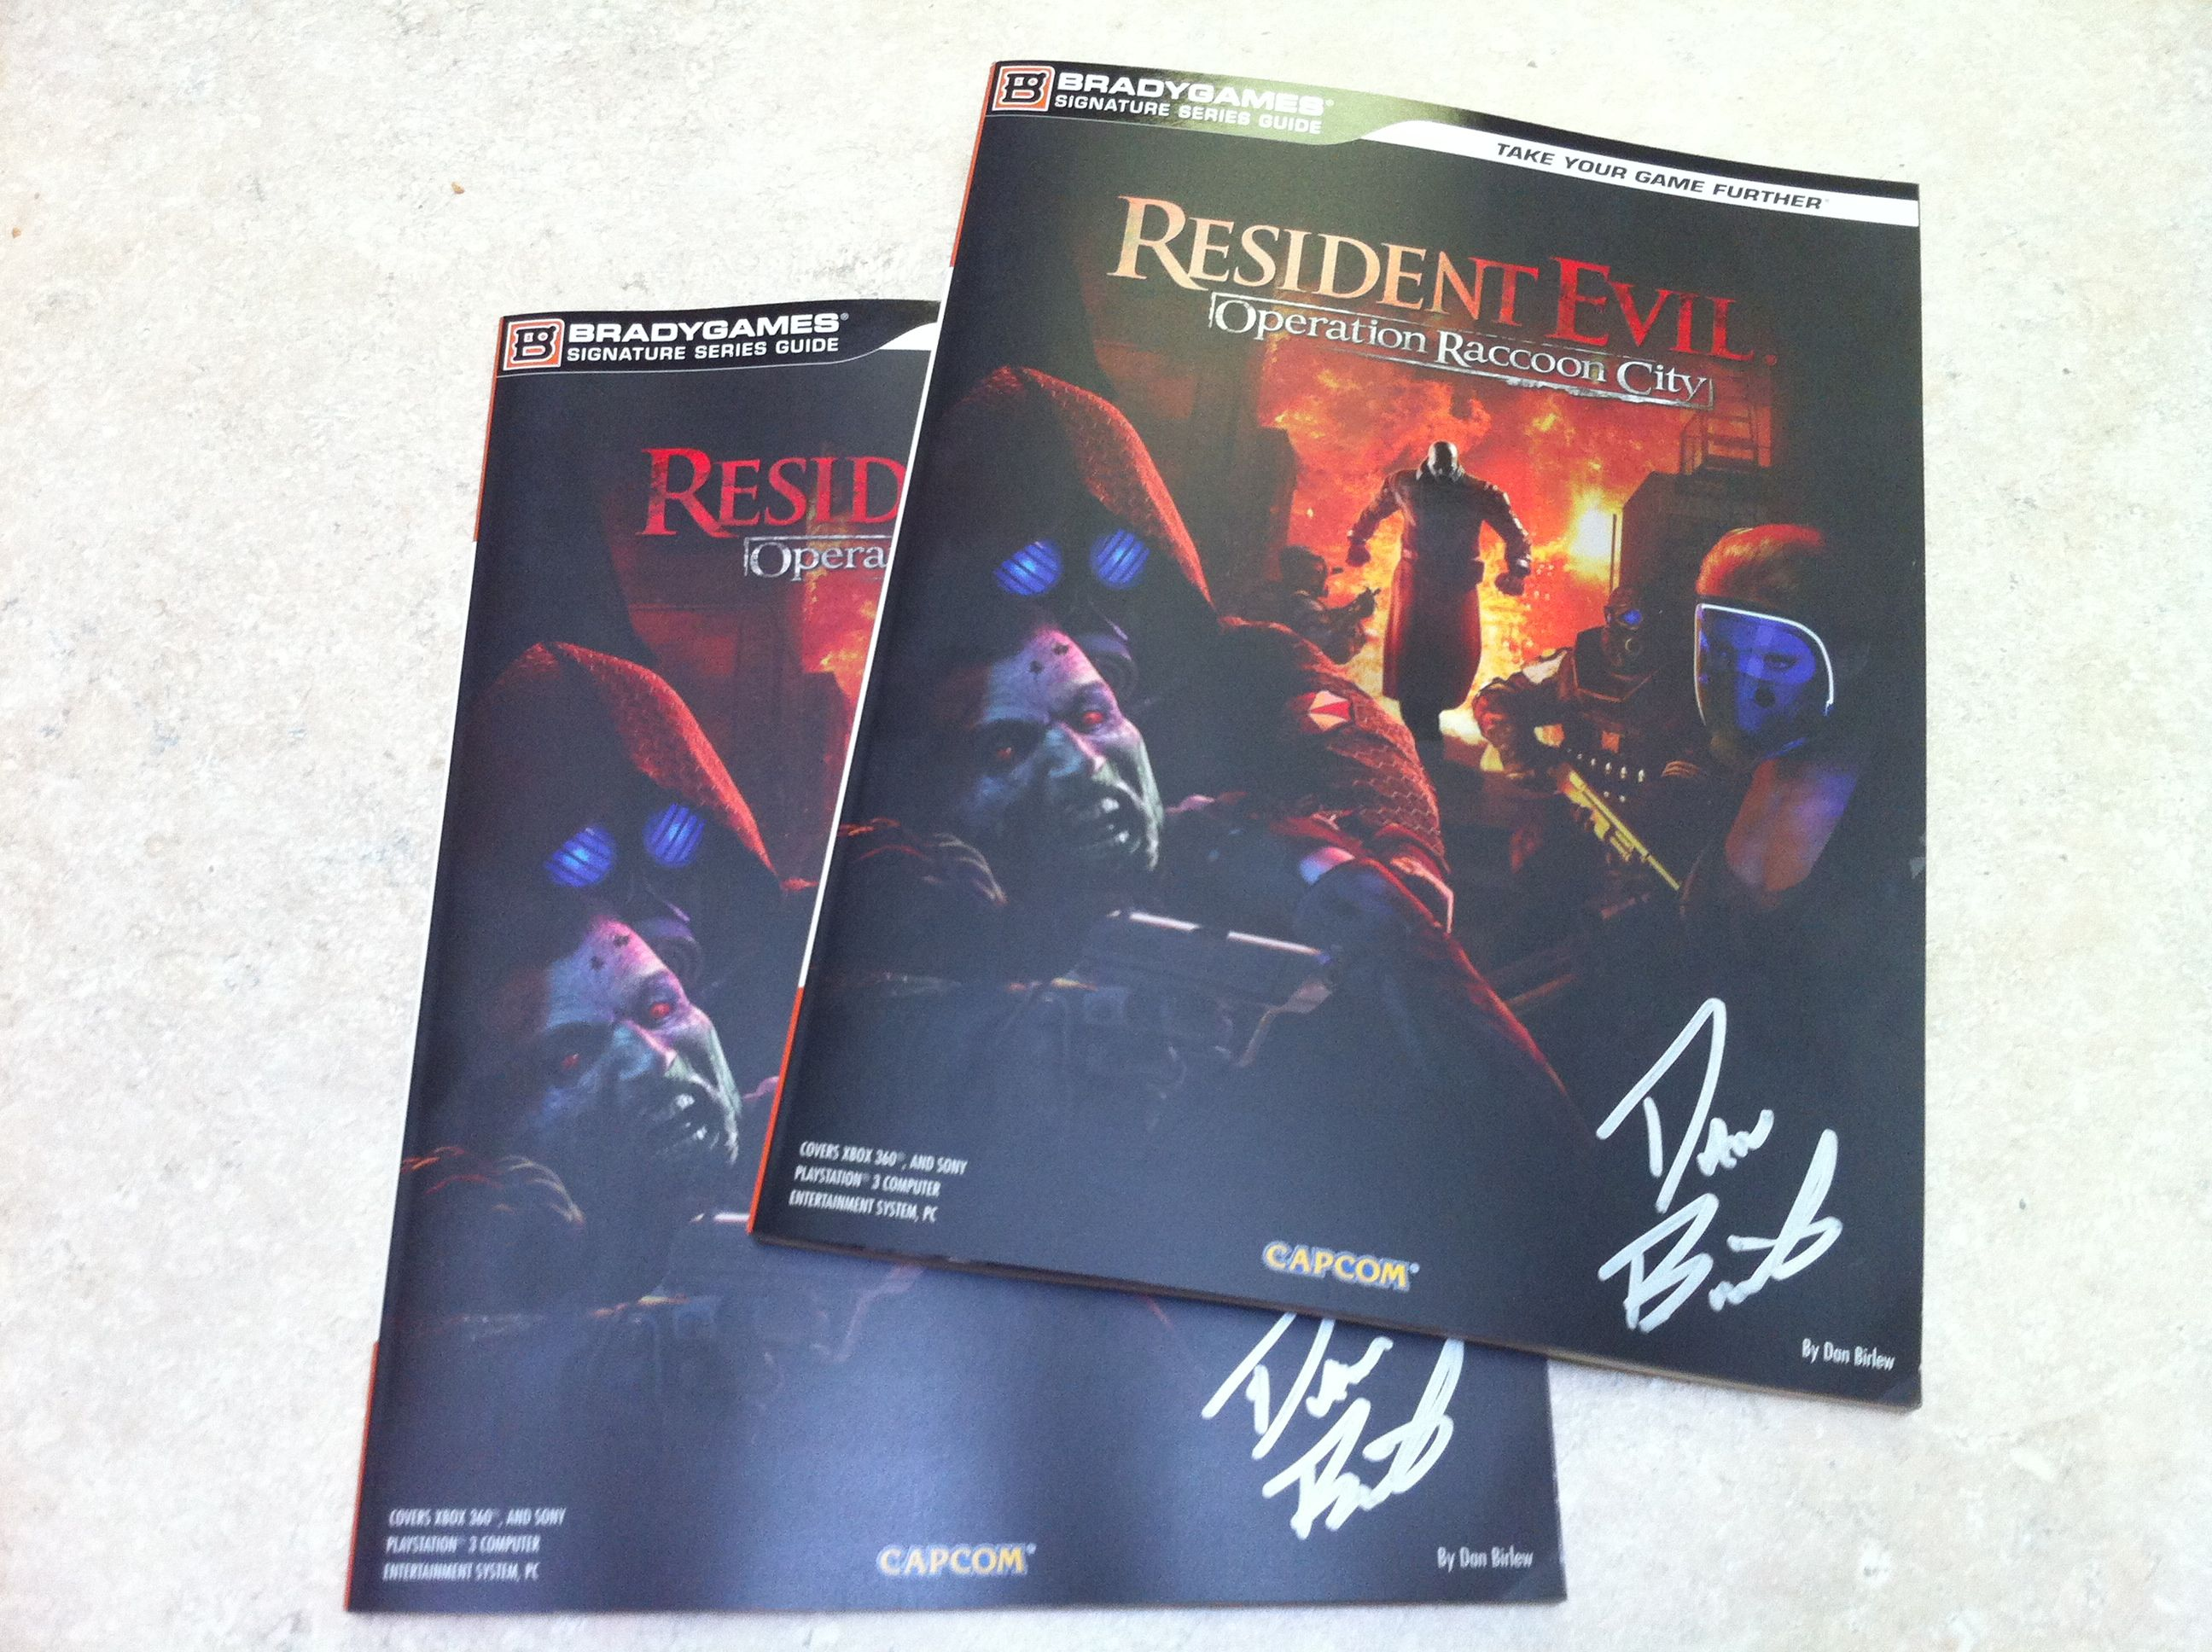 Autographed Resident Evil: Operation Raccoon City strategy guides